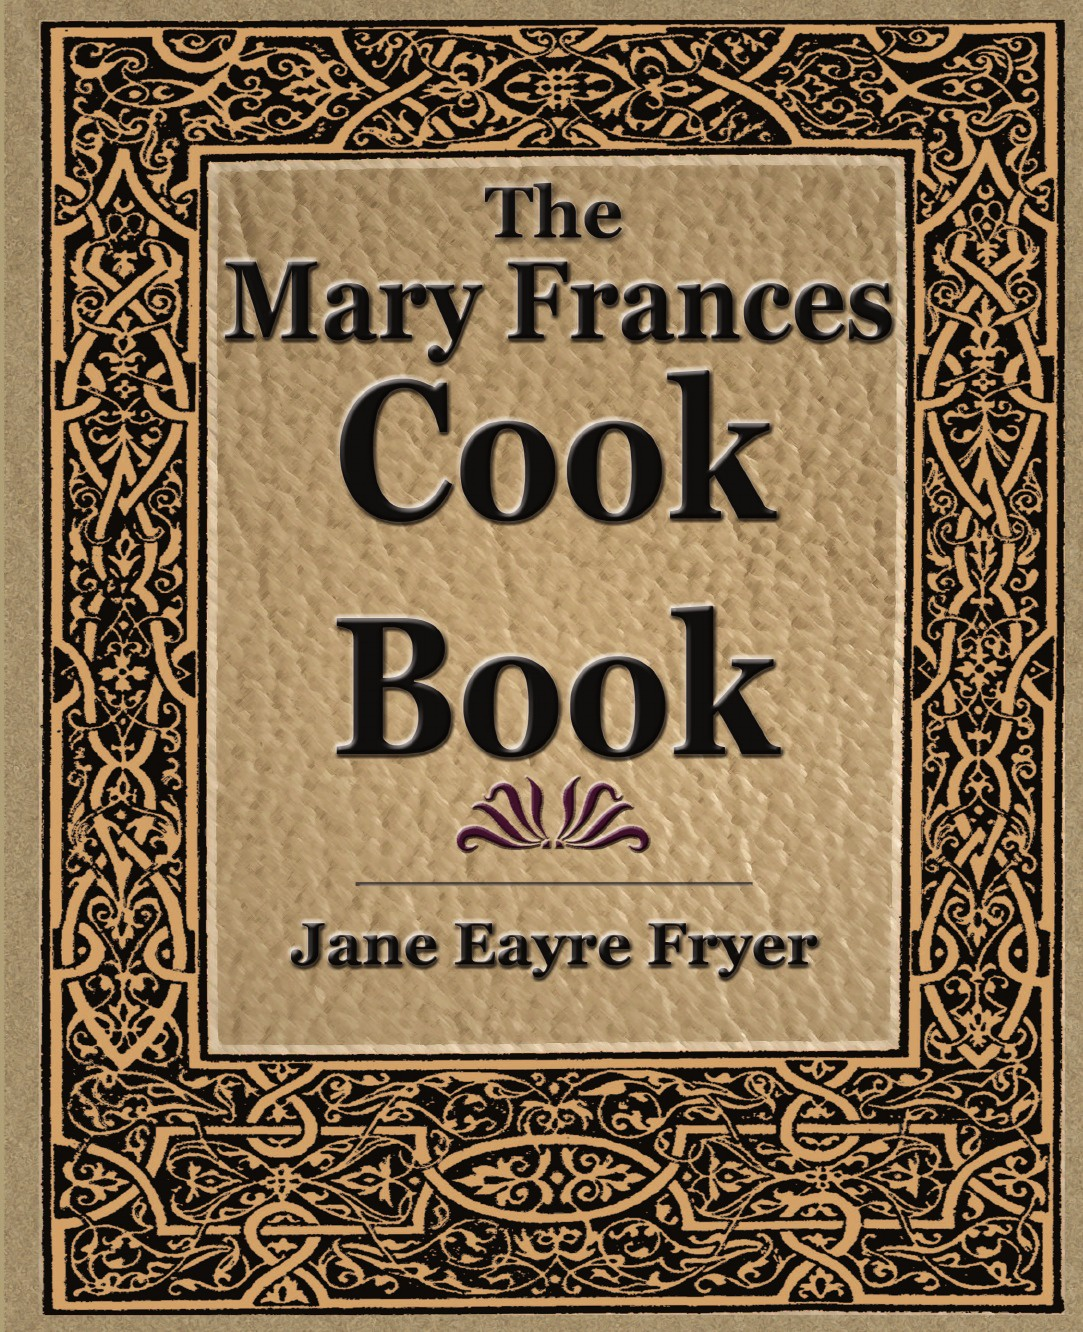 Jane Eayre Fryer The Mary Frances Cook Book (1912) wade mary hazelton blanchard our little cuban cousin